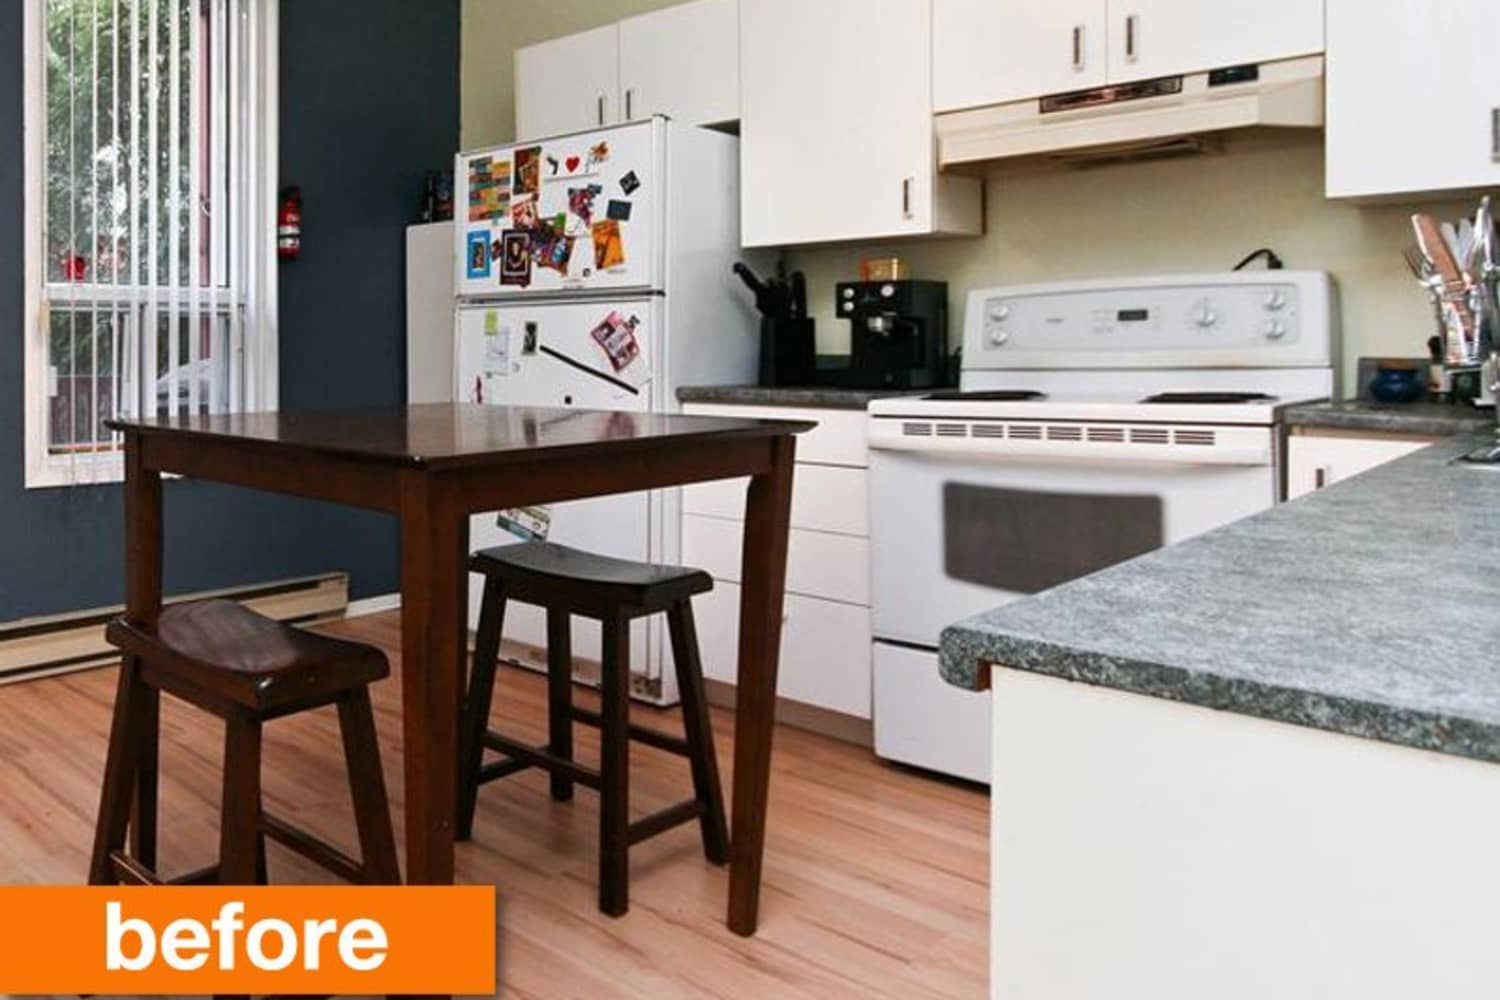 Before & After: A Refreshed and Revamped Kitchen For $1000